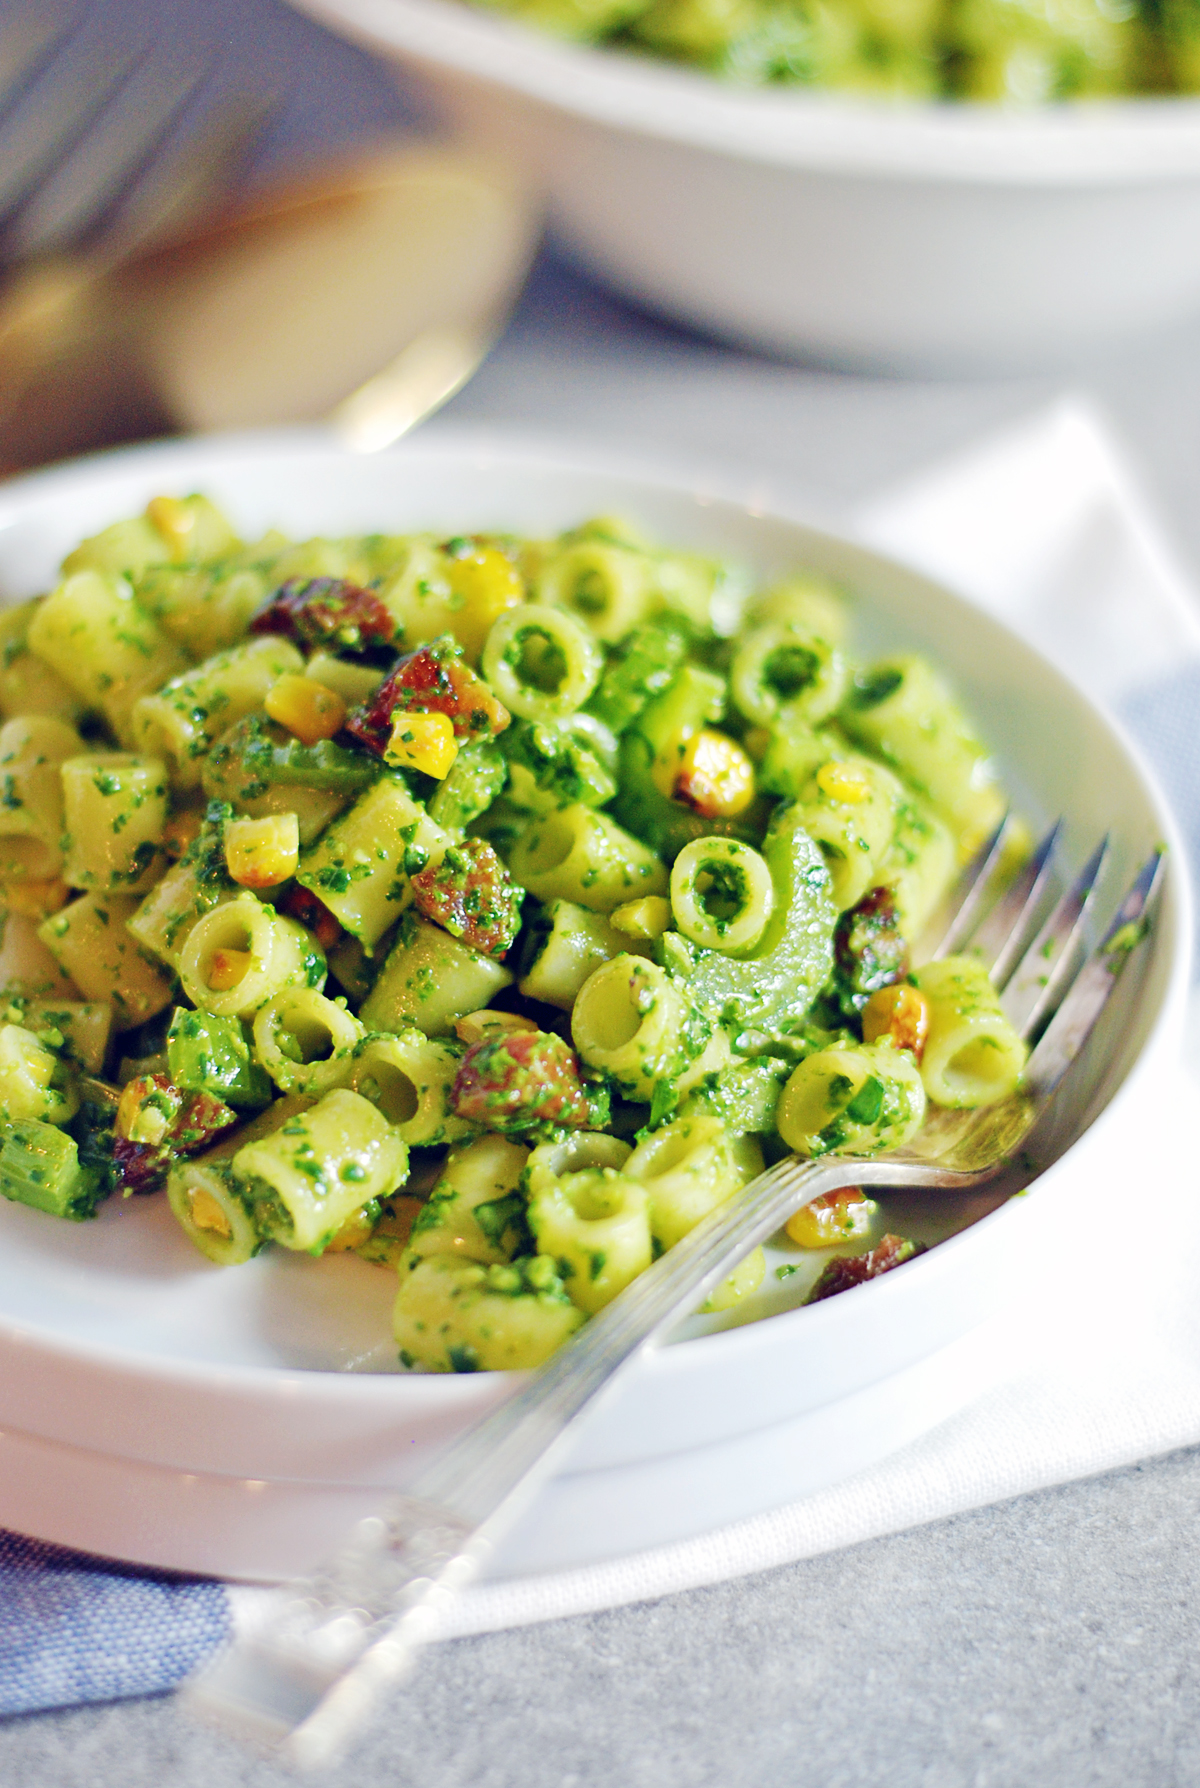 This roasted corn pasta salad features delicious oven-roasted corn and celery with fresh spinach pesto and crispy pancetta.